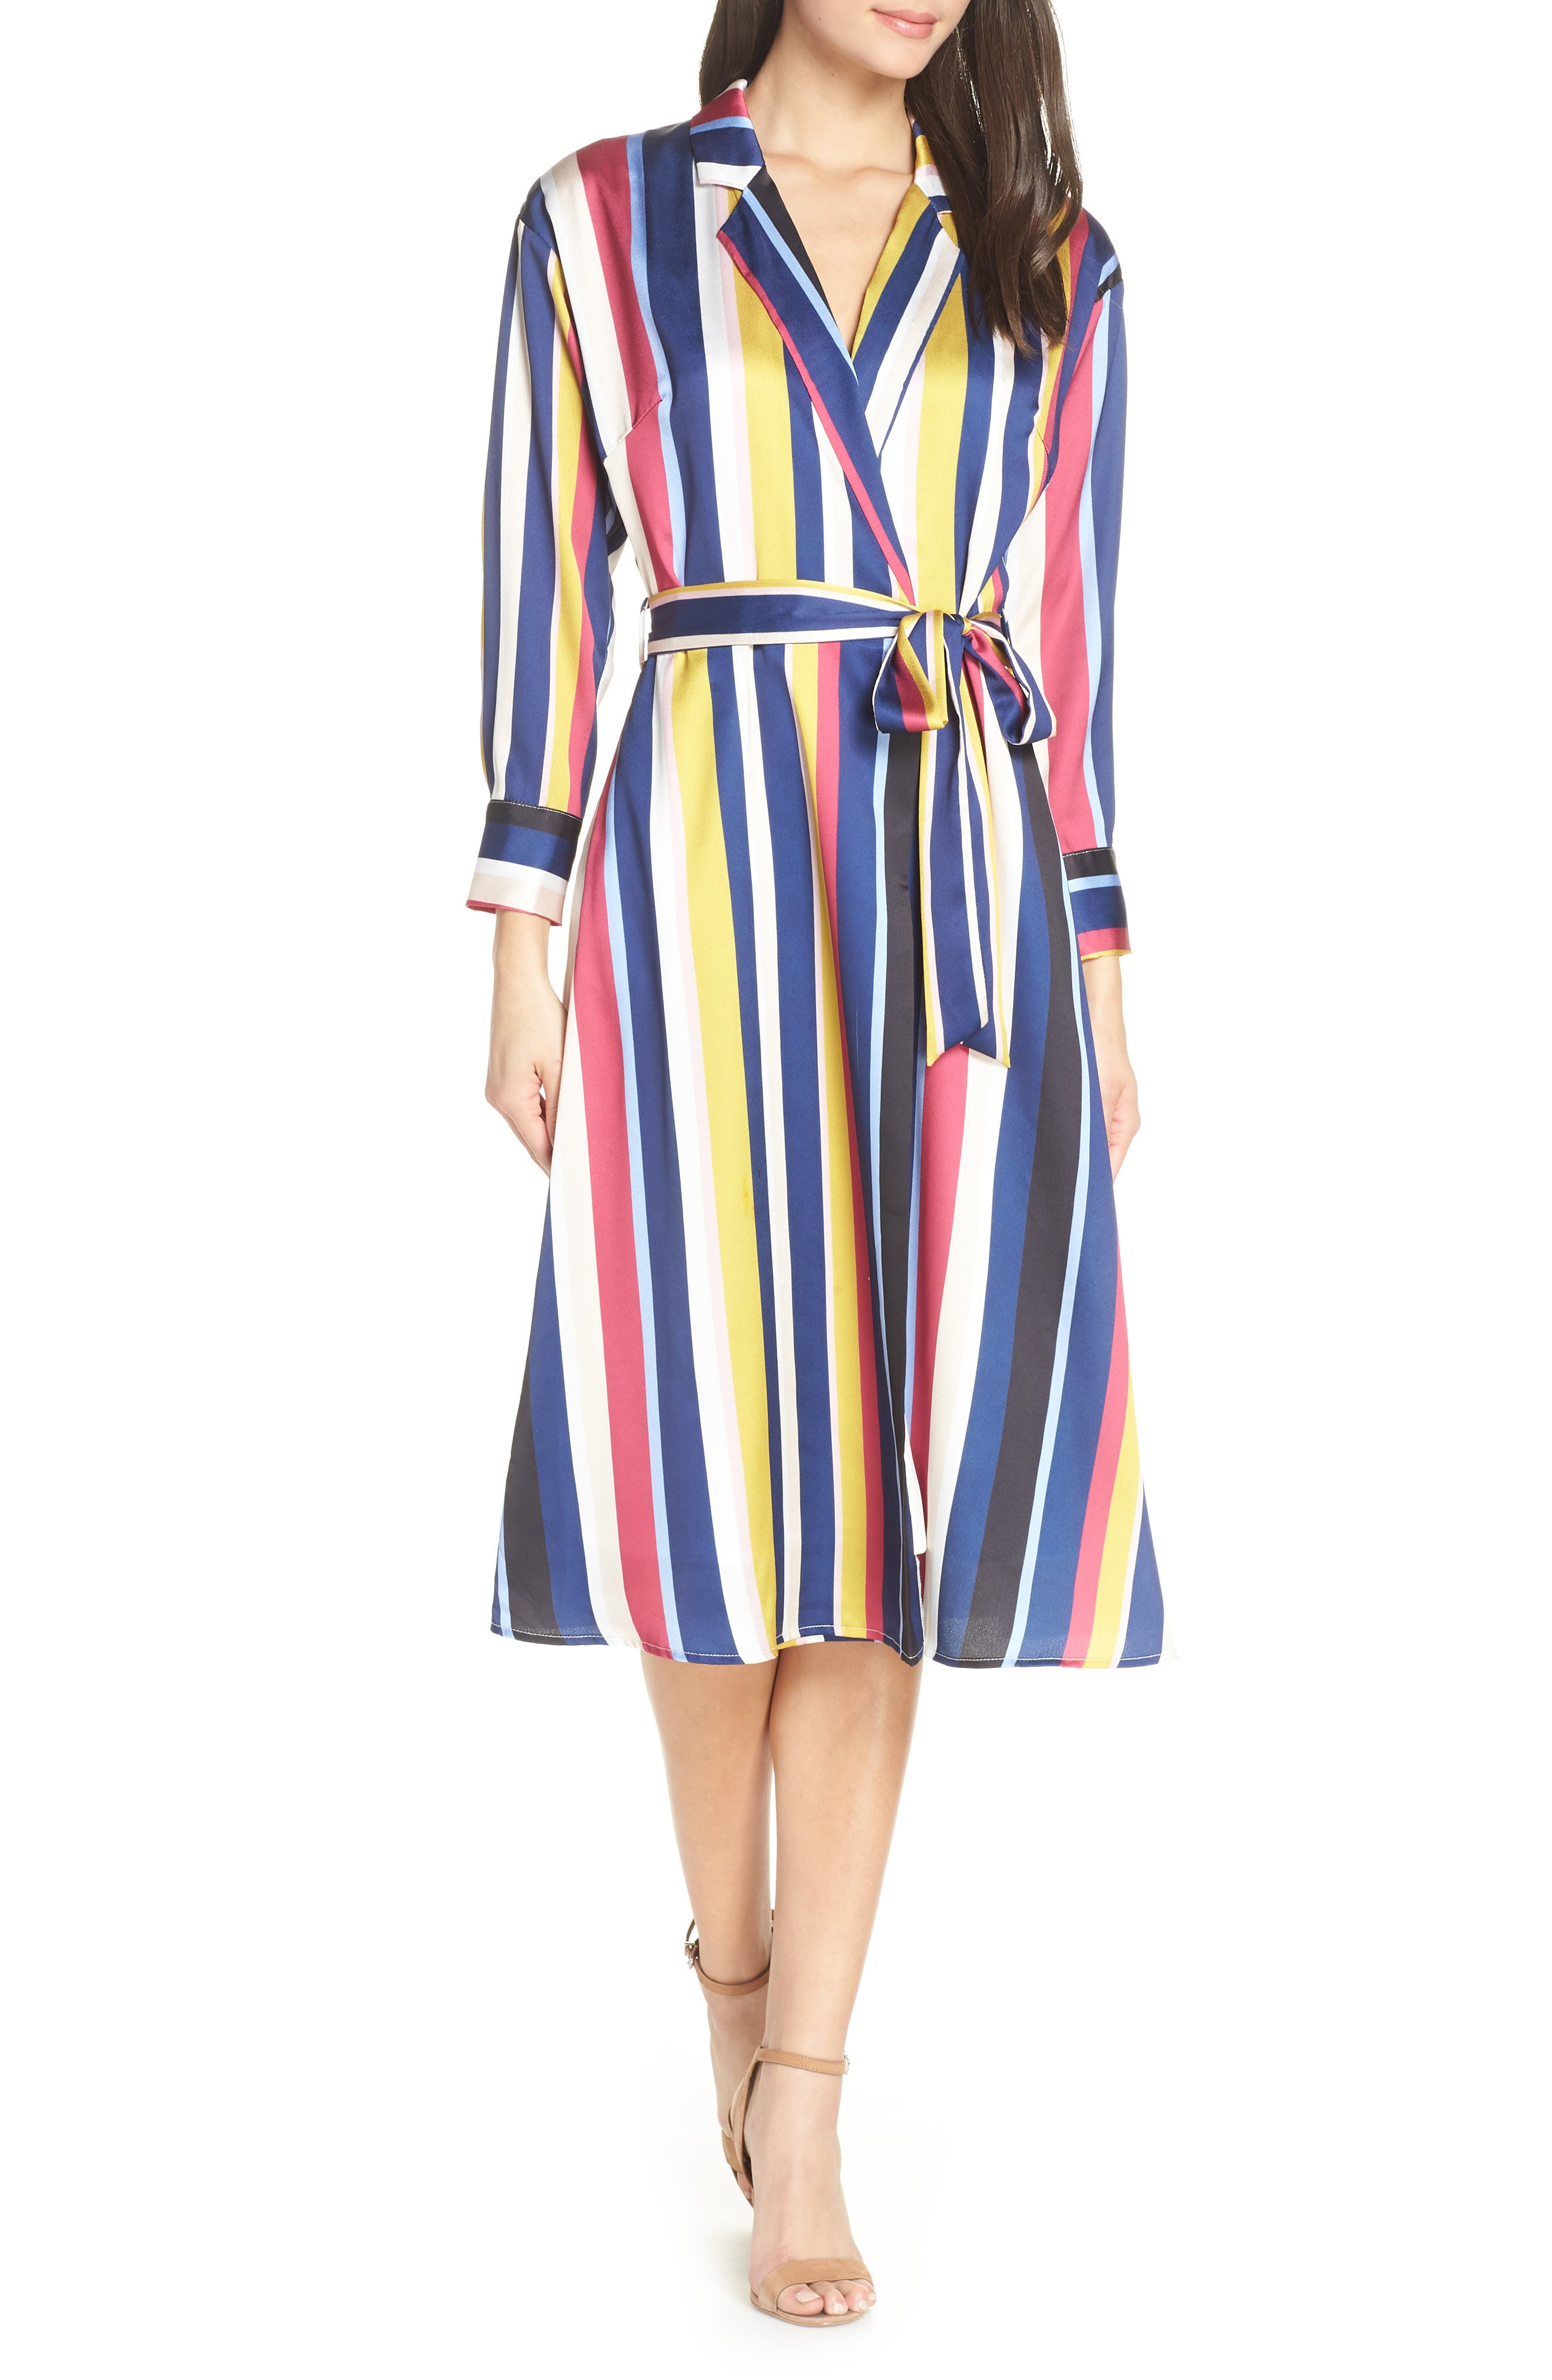 70s Outfits – 70s Style Ideas for Women Womens Chelsea28 Stripe Shirtdress $129.00 AT vintagedancer.com